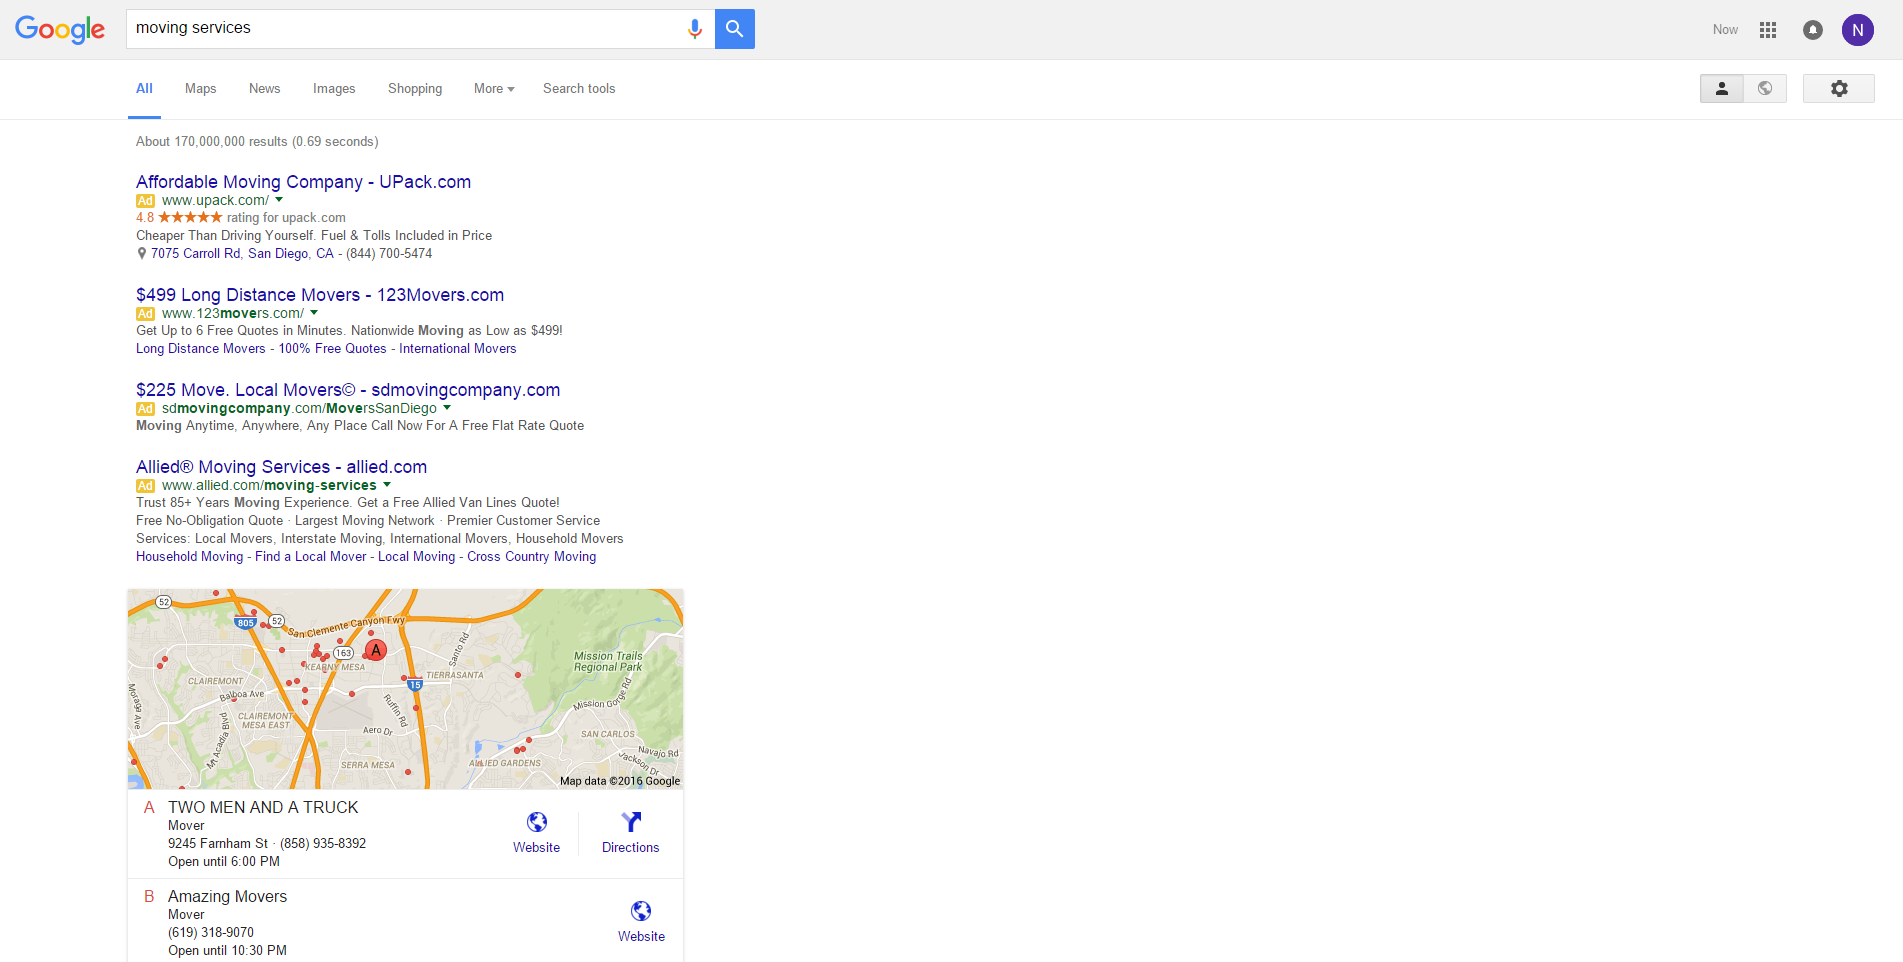 Google's newest SERP layout